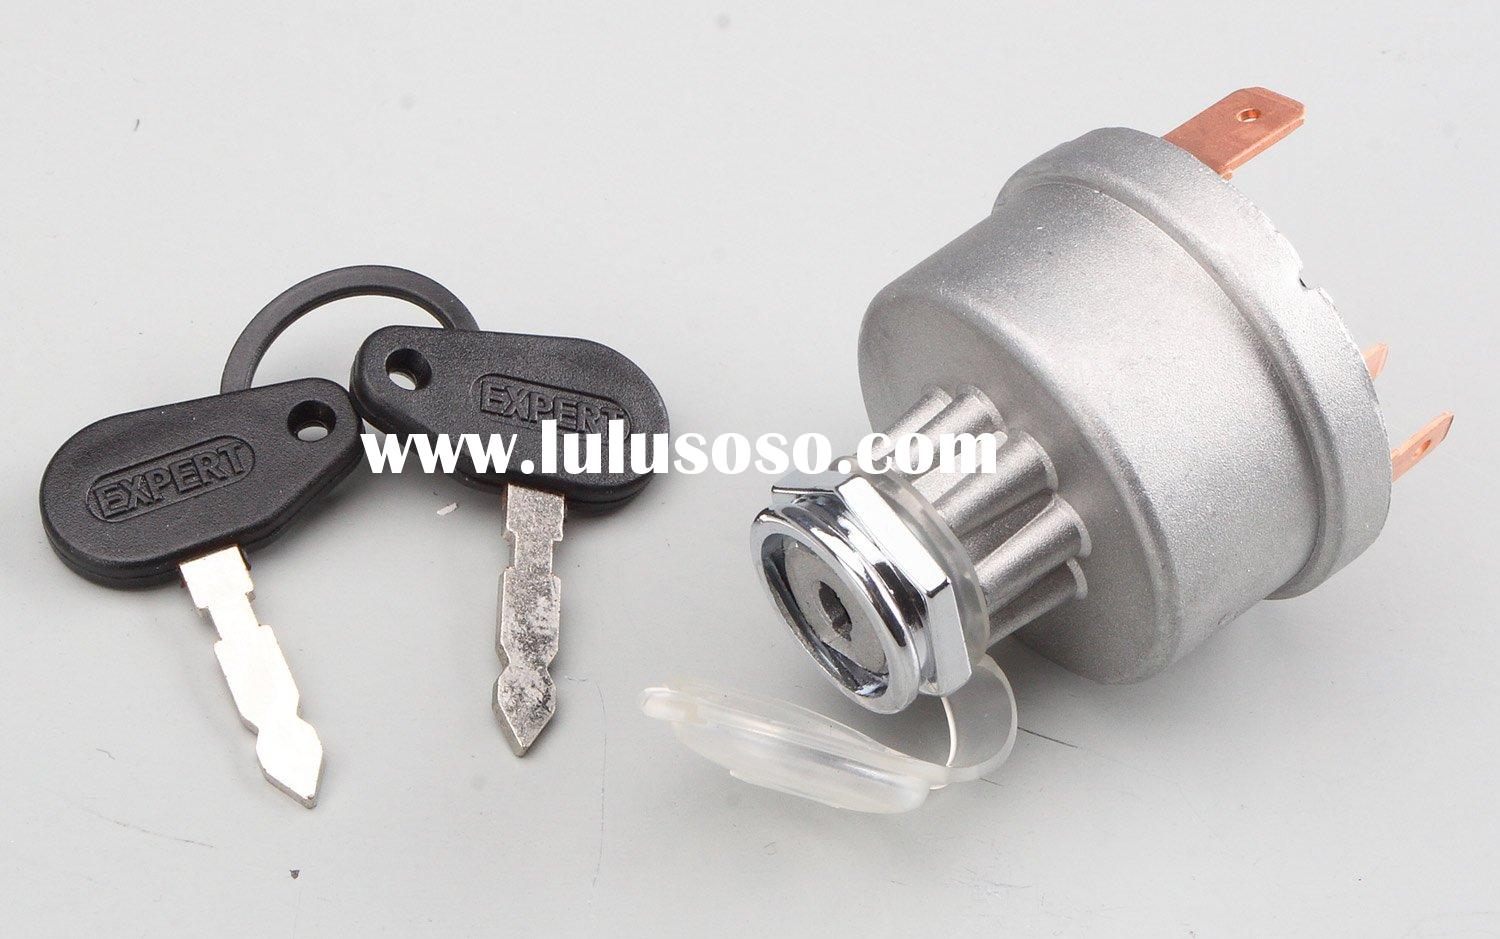 Ignition Switch for Tractor, accessory, spare part, ignition starter switch,component part